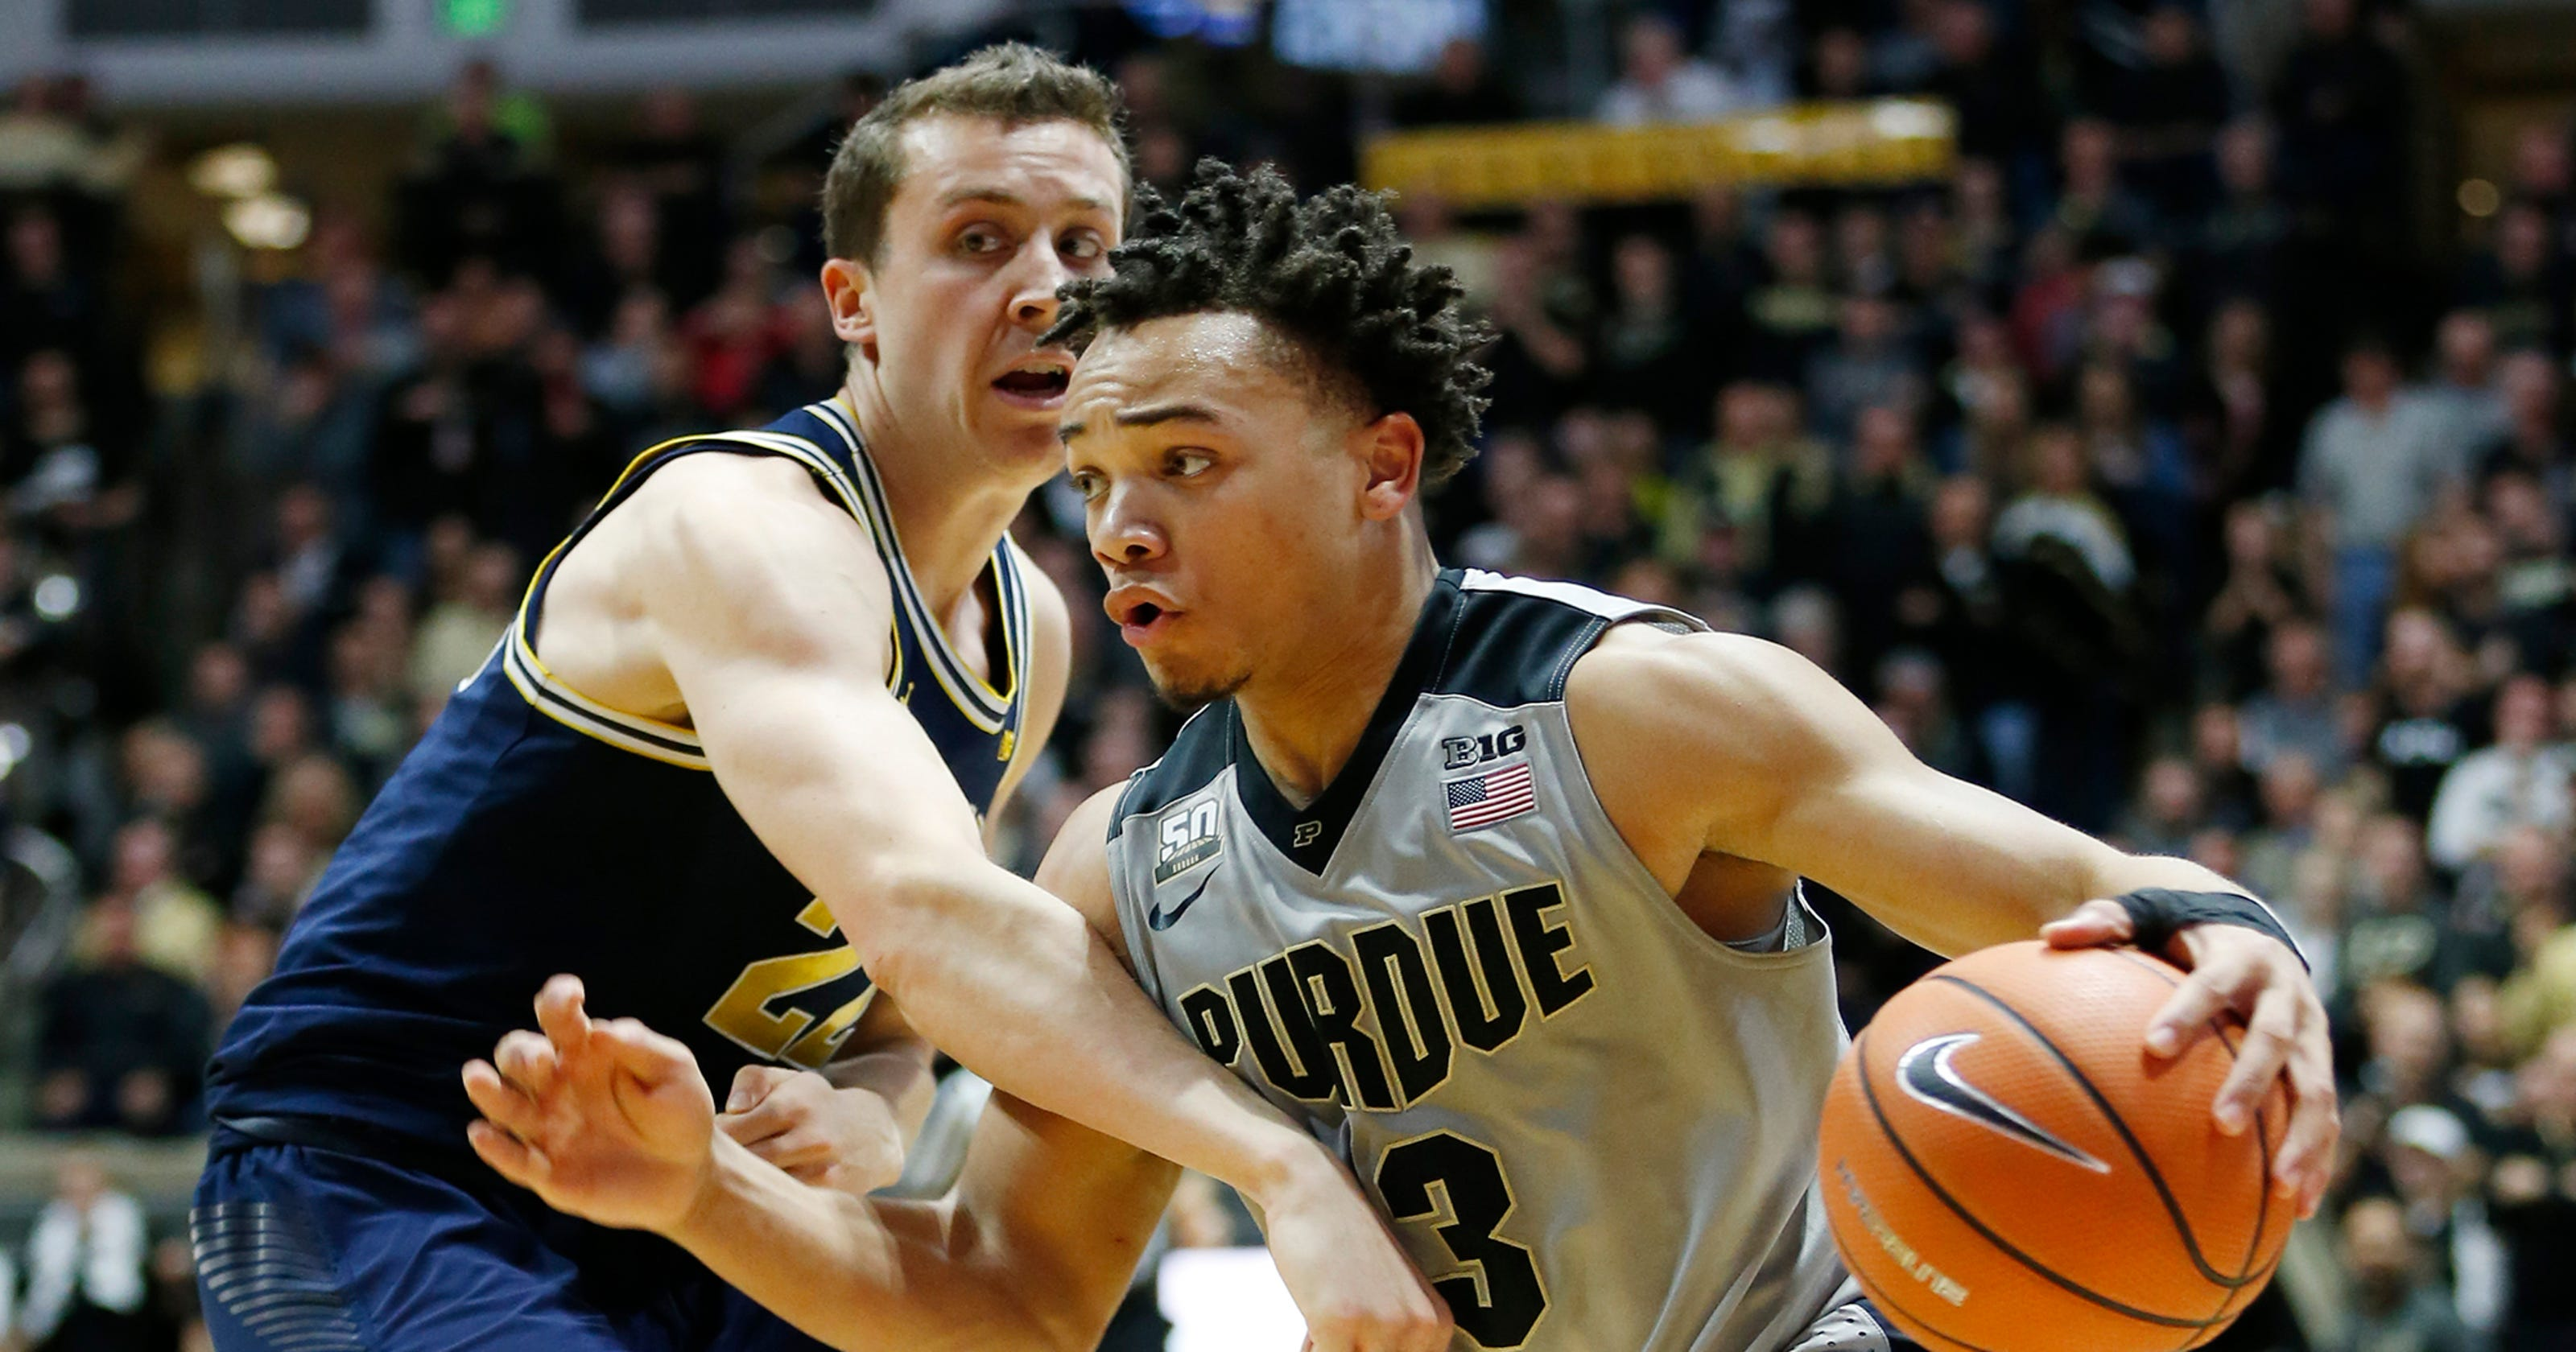 b0cd7d418 Purdue s Carsen Edwards on Cousy Award watch list for top point guard